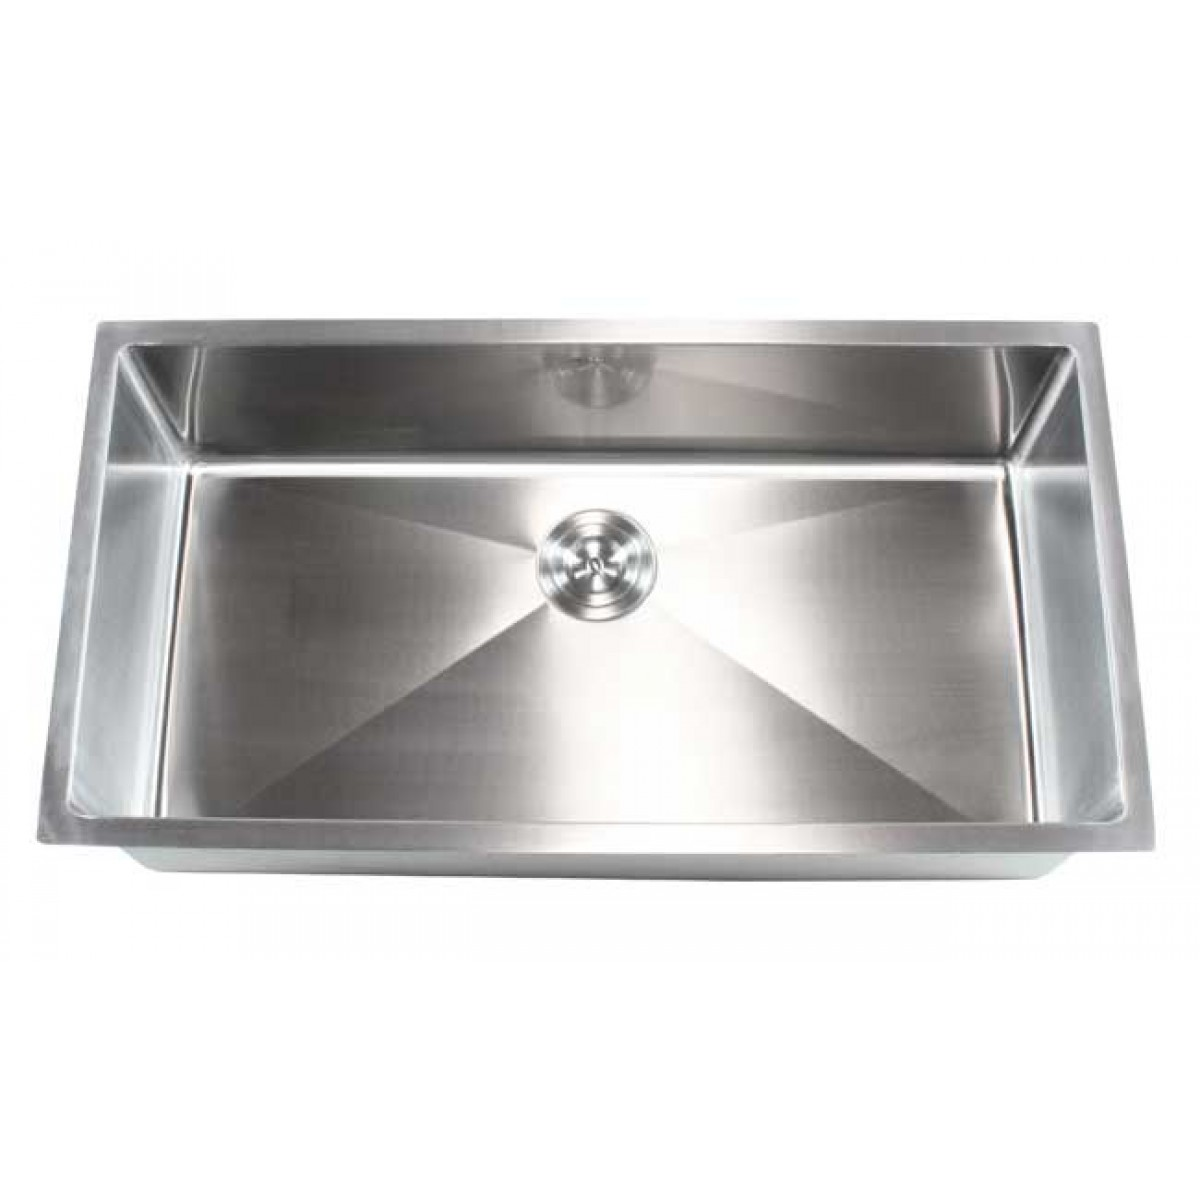 36 Inch Stainless Steel Undermount Single Bowl Kitchen Sink 15mm Radius Design 16 Gauge